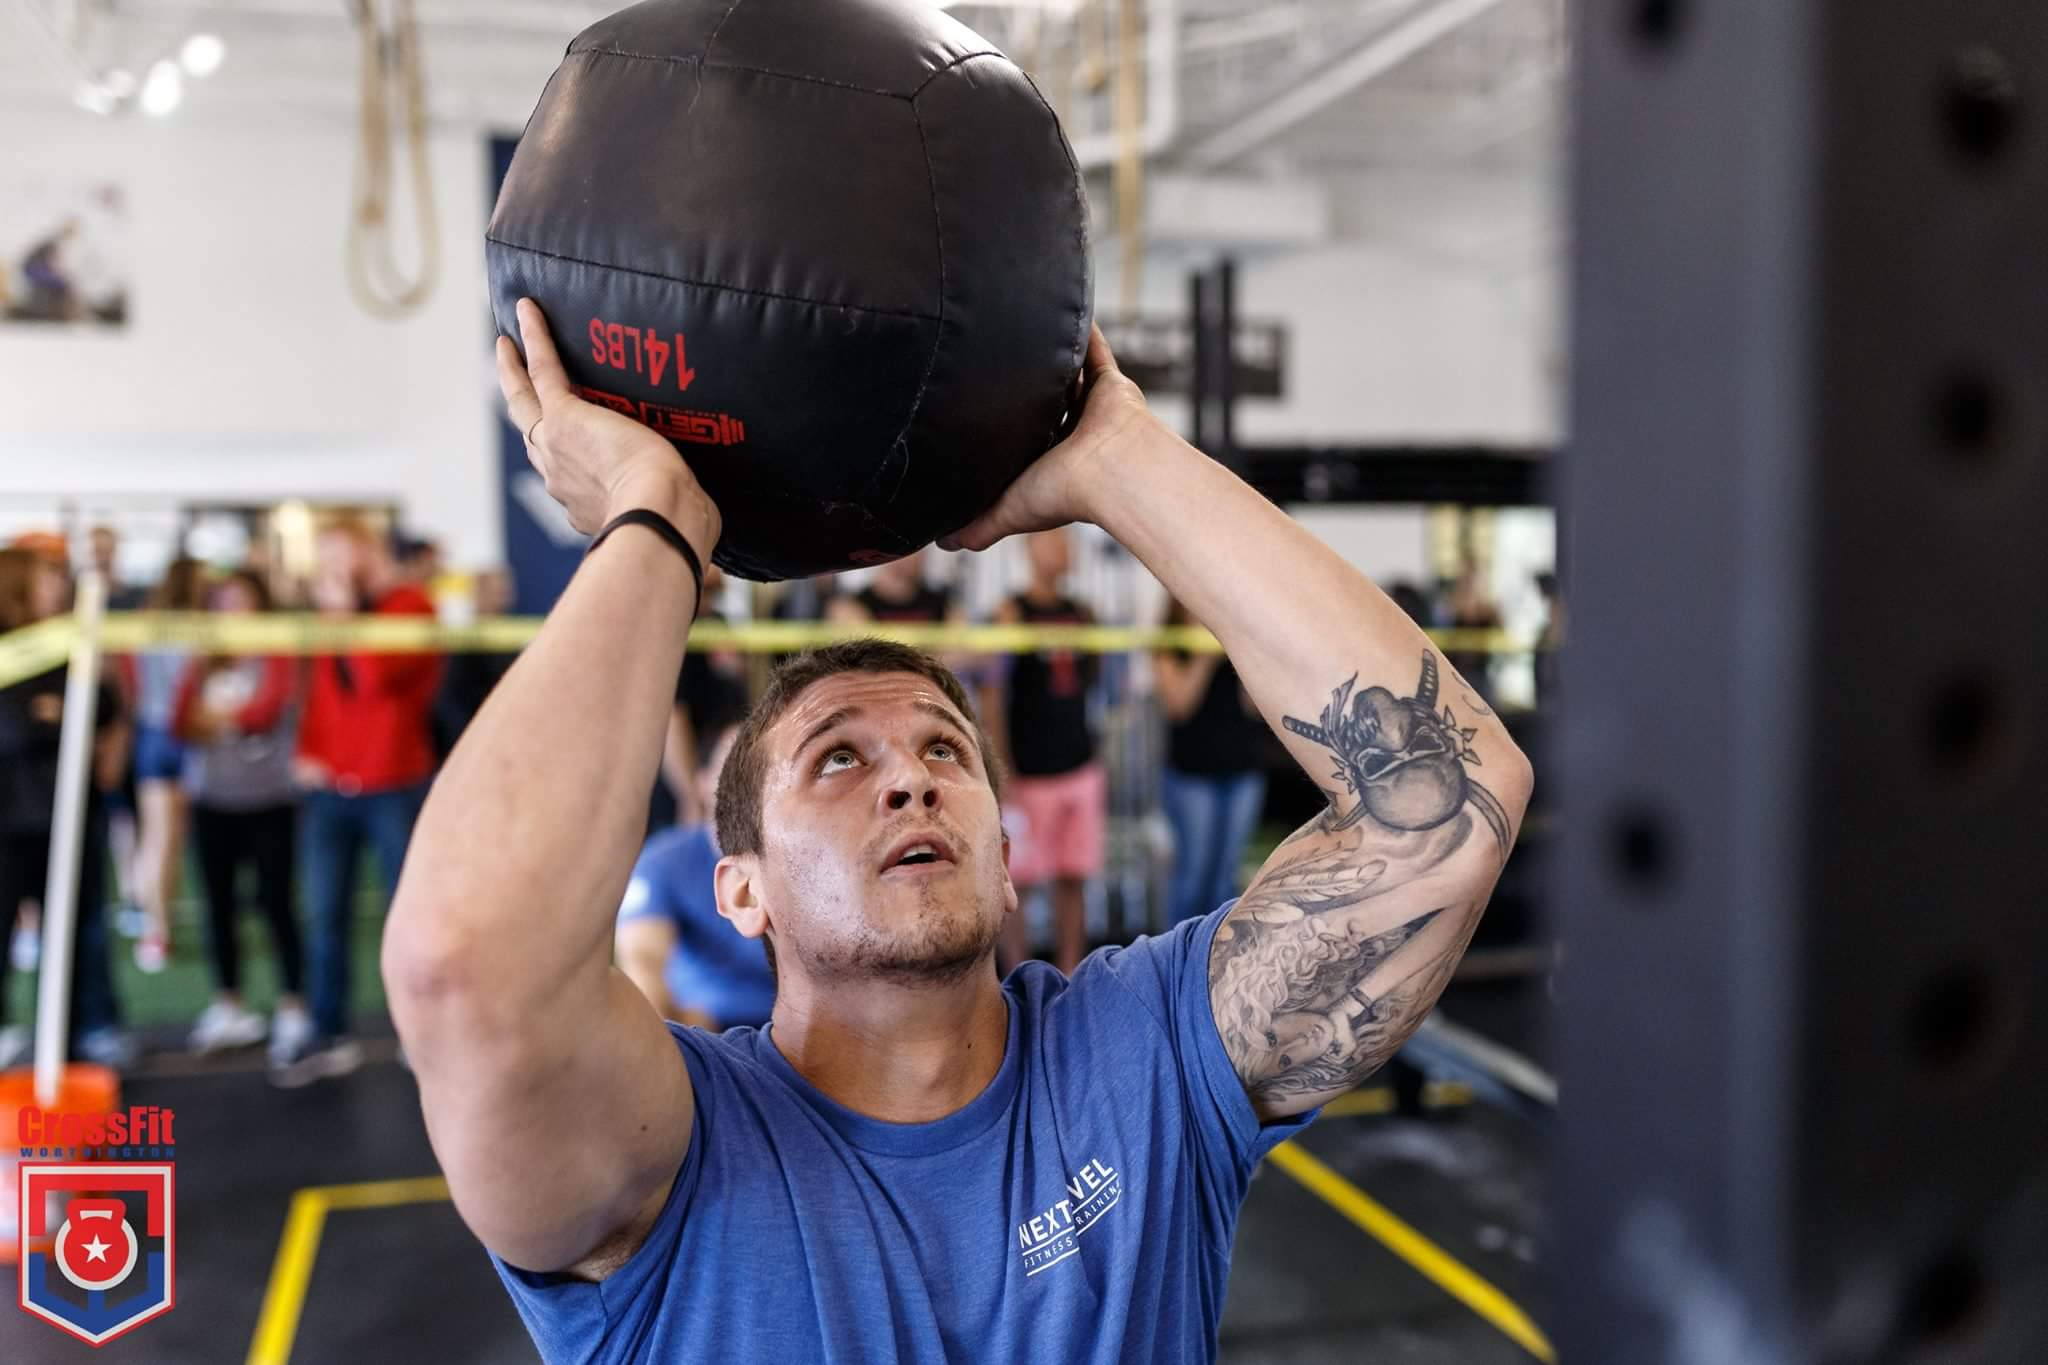 Member: Chris    Competing and placing at the annual Festius CrossFit Games.